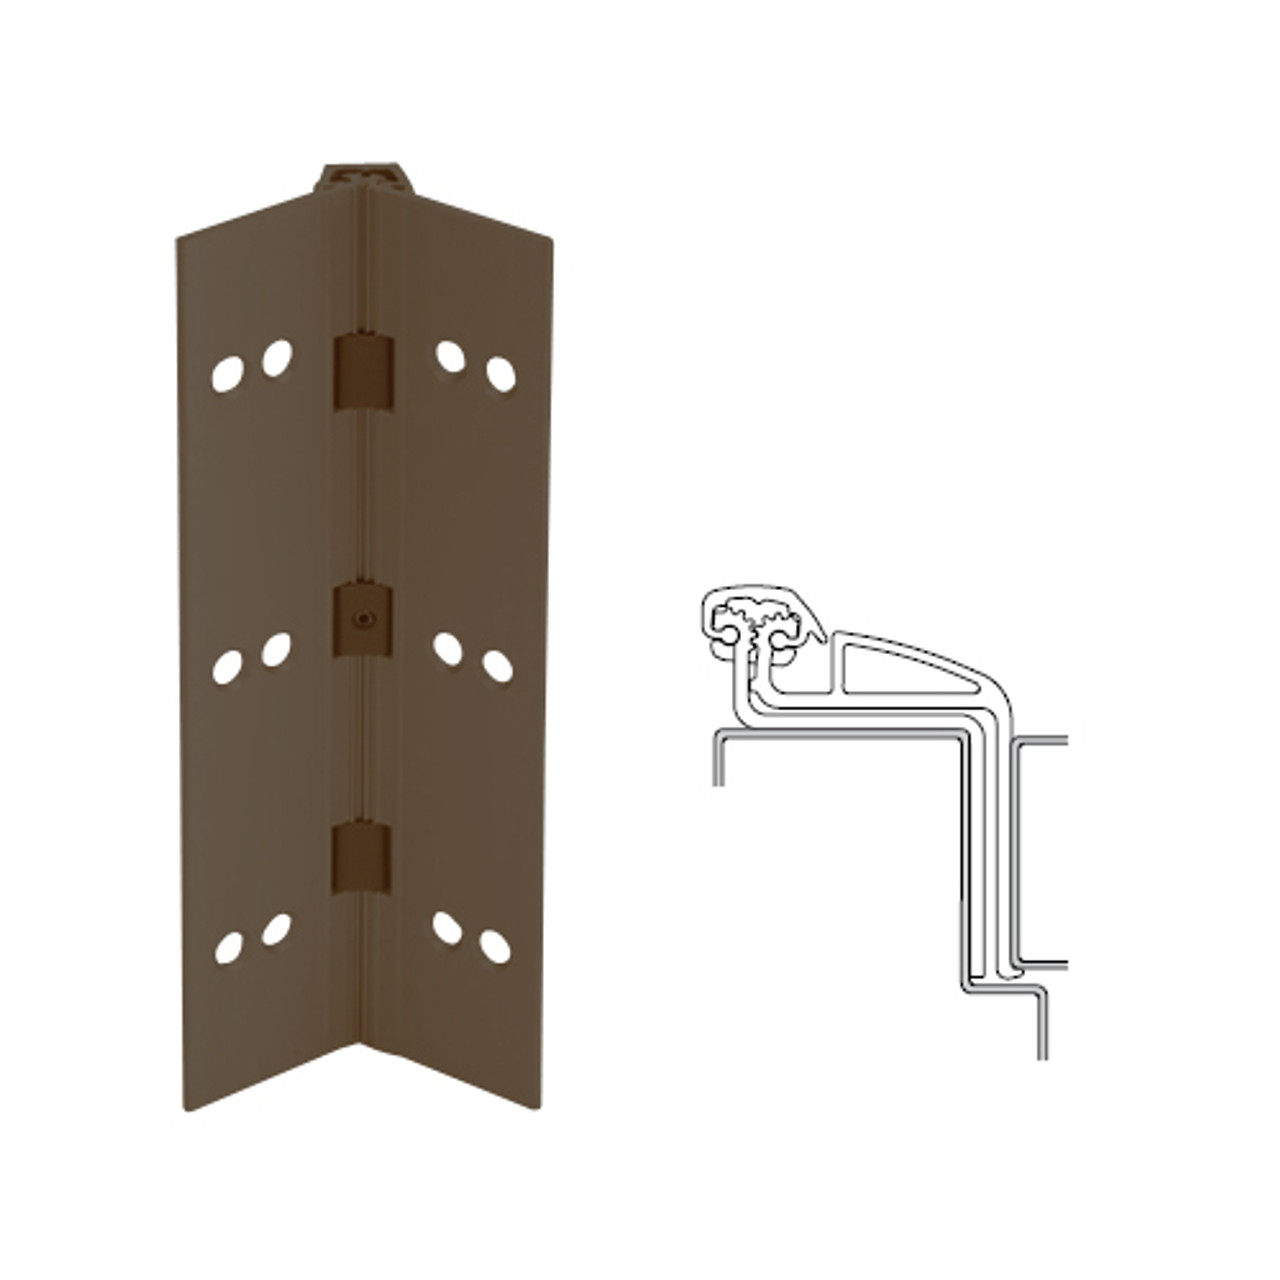 041XY-313AN-85-TF IVES Full Mortise Continuous Geared Hinges with Thread Forming Screws in Dark Bronze Anodized